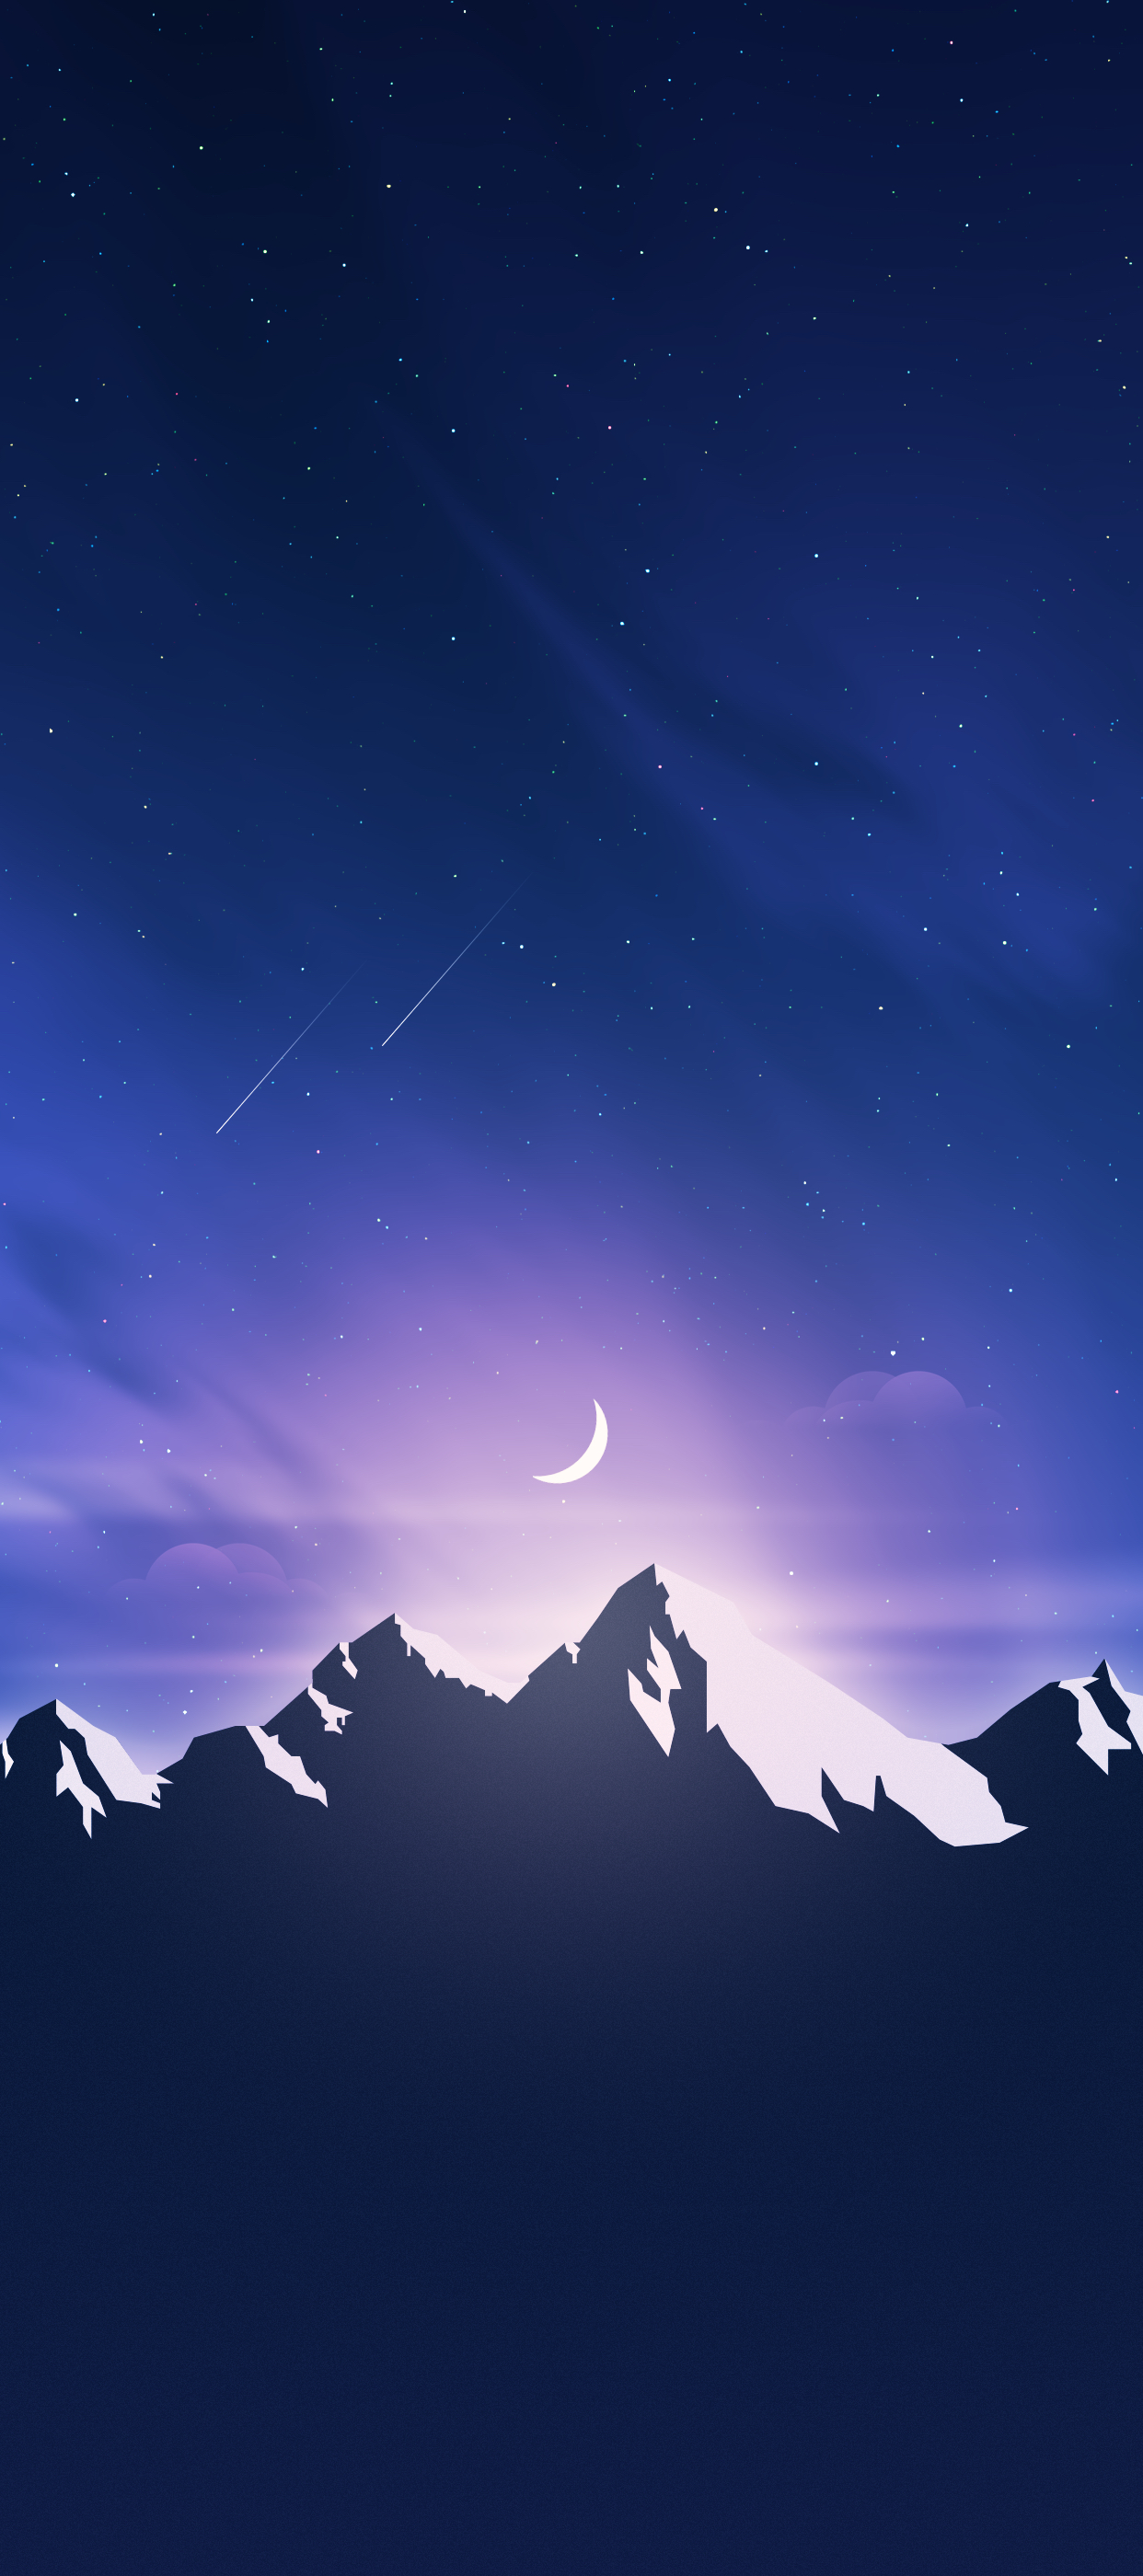 mountain valley iphone wallpaper axellvak night mountain